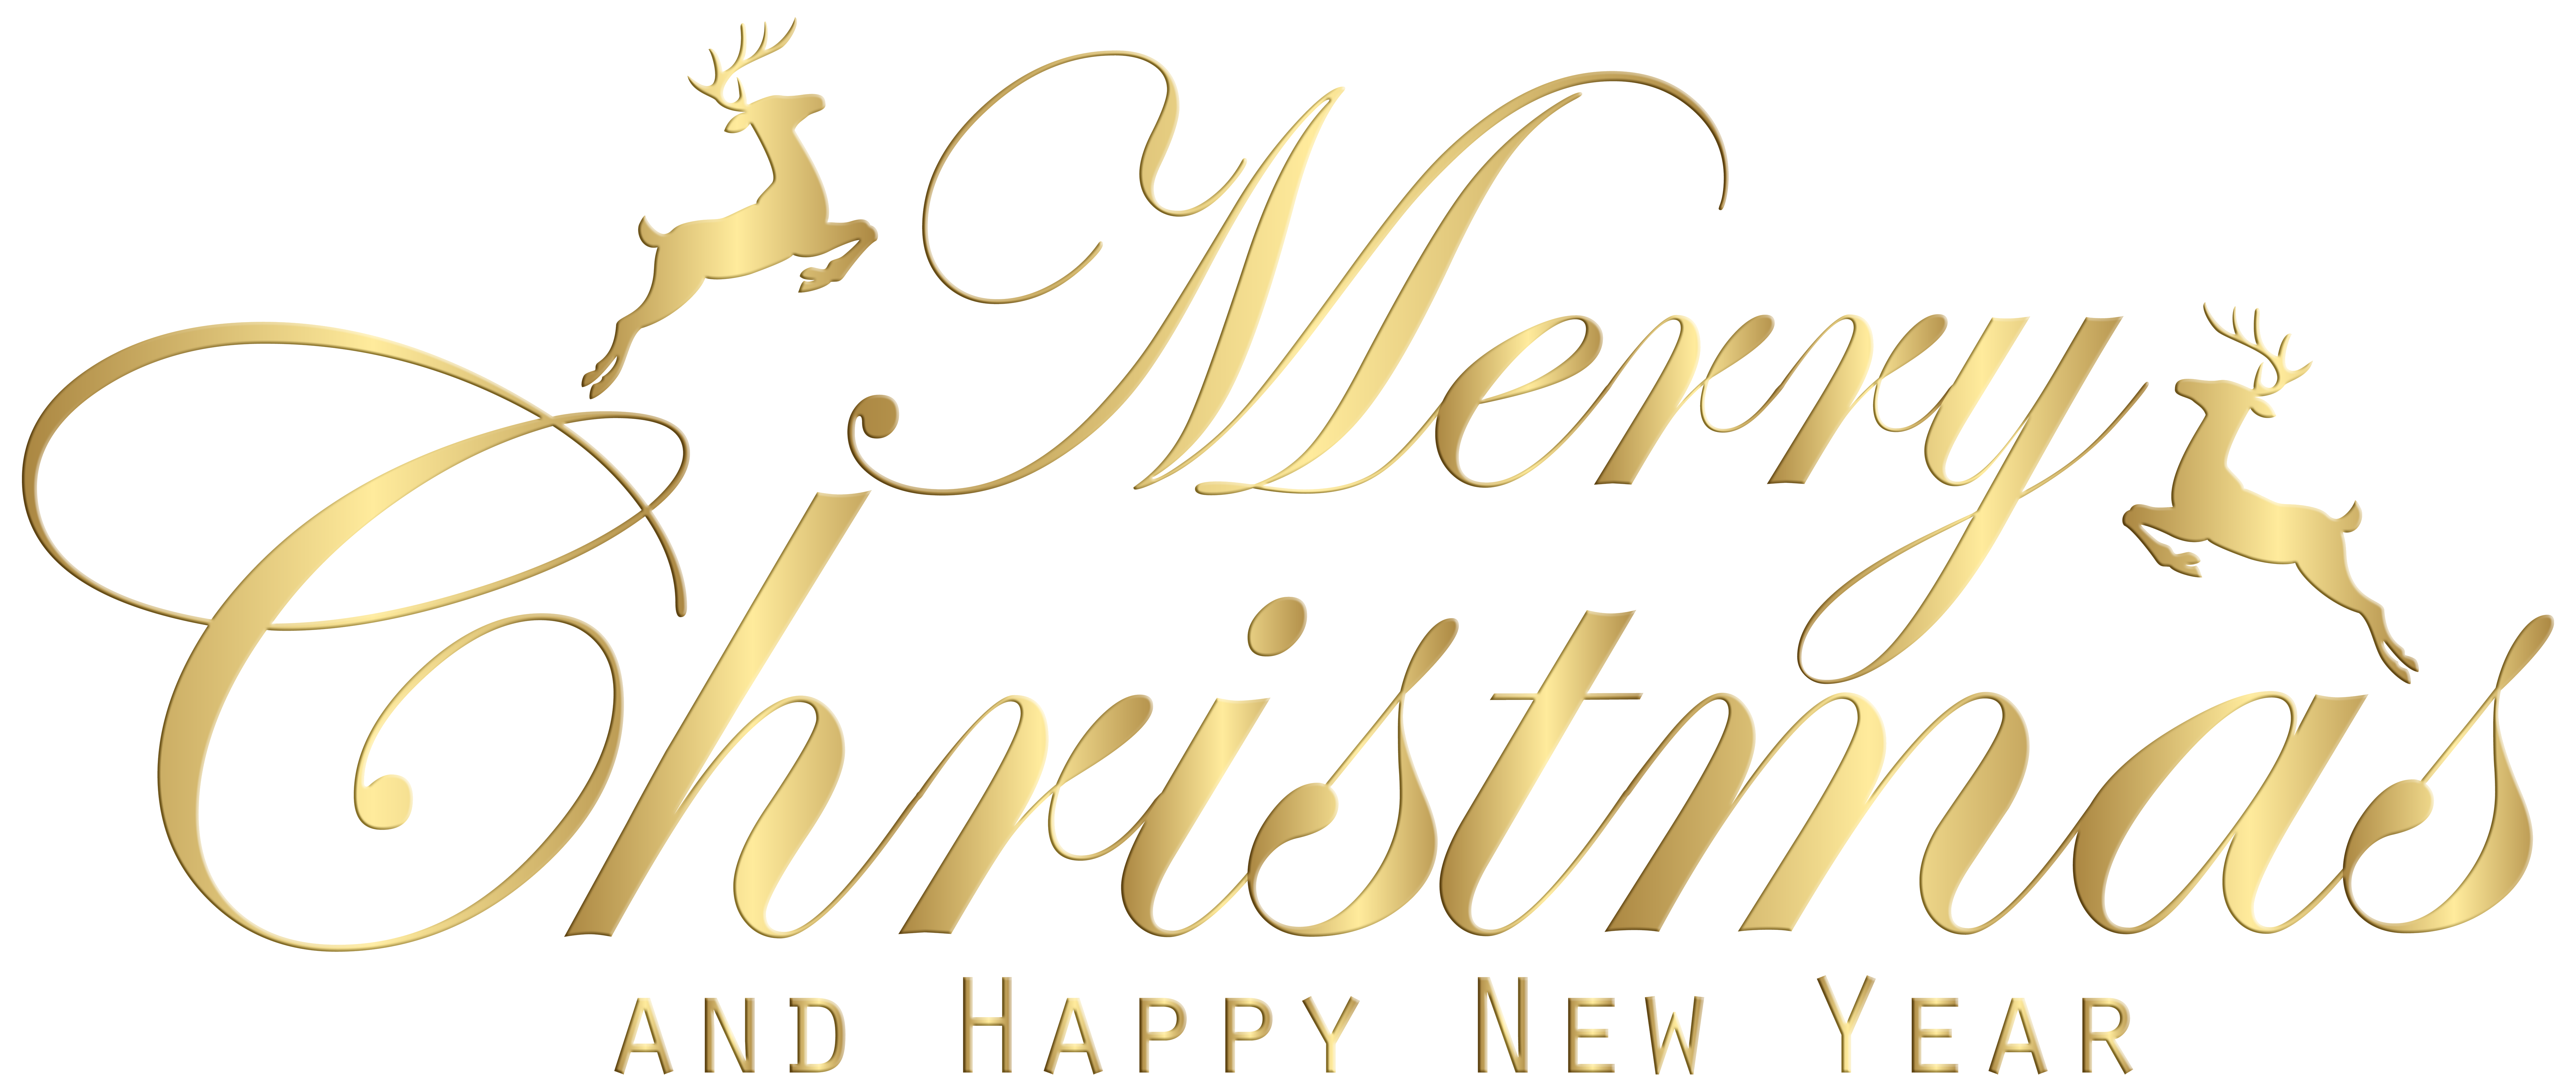 Happy New Year Merry Christmas And Clipart With Black White.